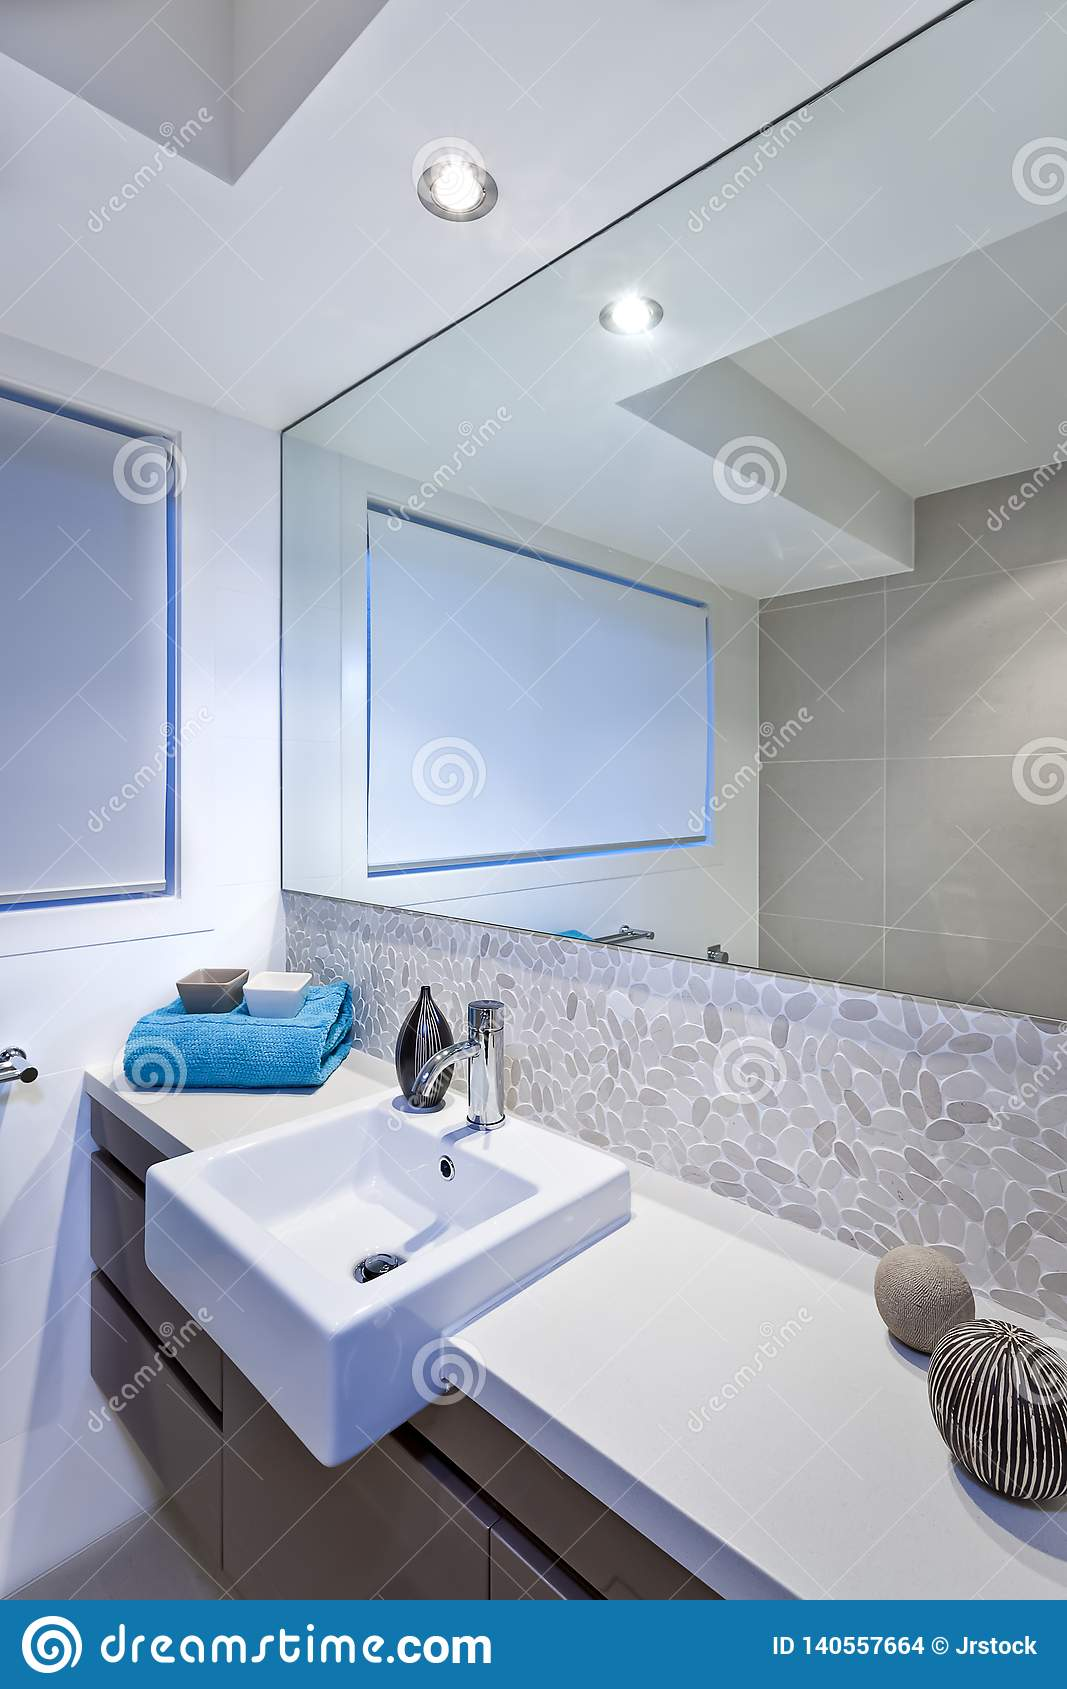 Luxury Bathroom With Wide Mirrors And Tap And Sink Stock Photo Image Of Modern Illuminated 140557664